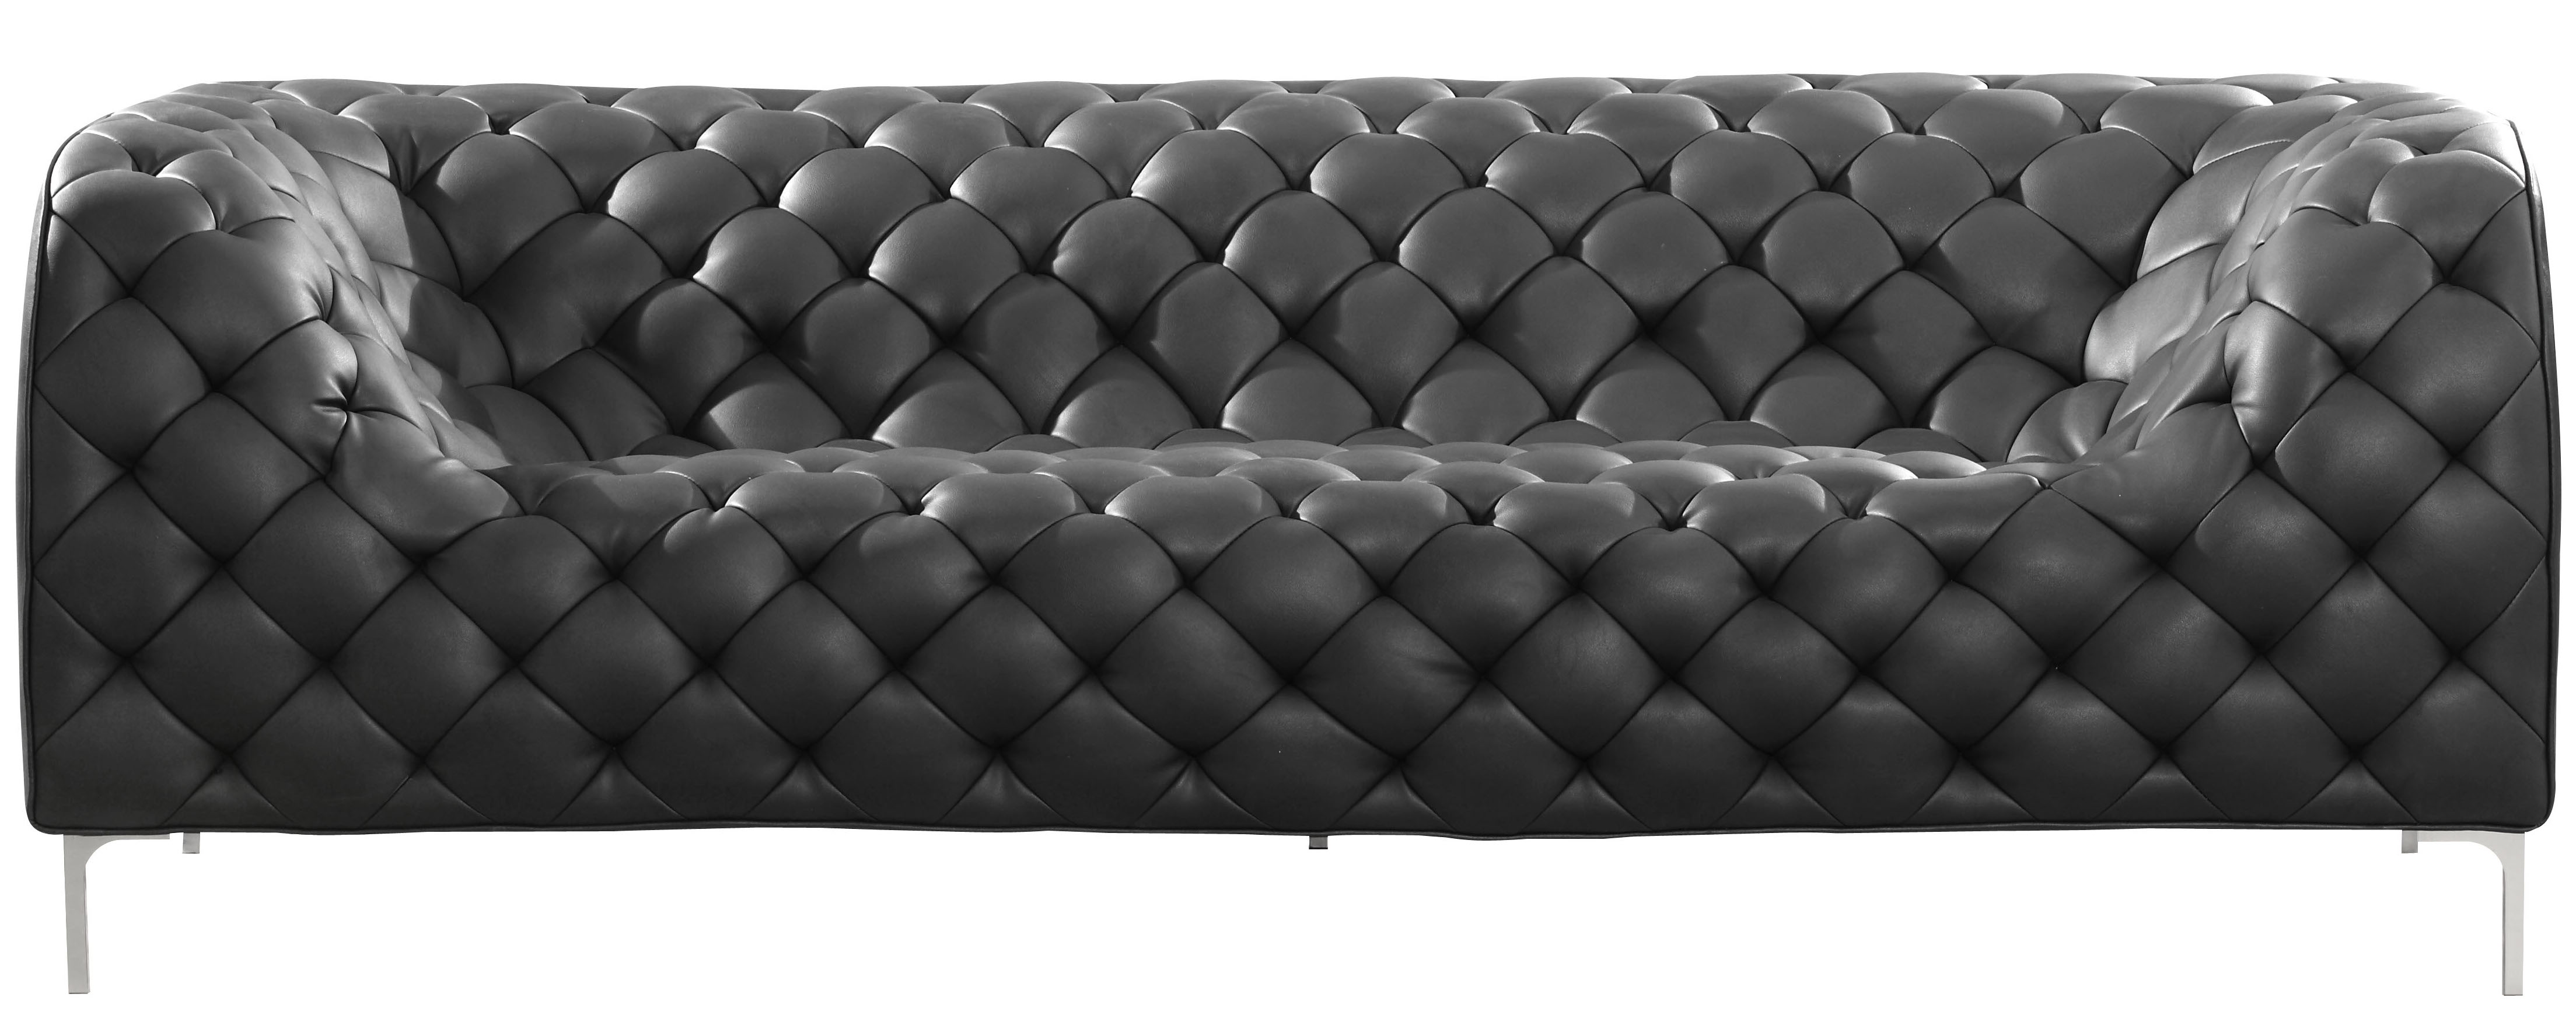 Zuo Sofa Puget Sofa Gray By Zuo Modern Thesofa